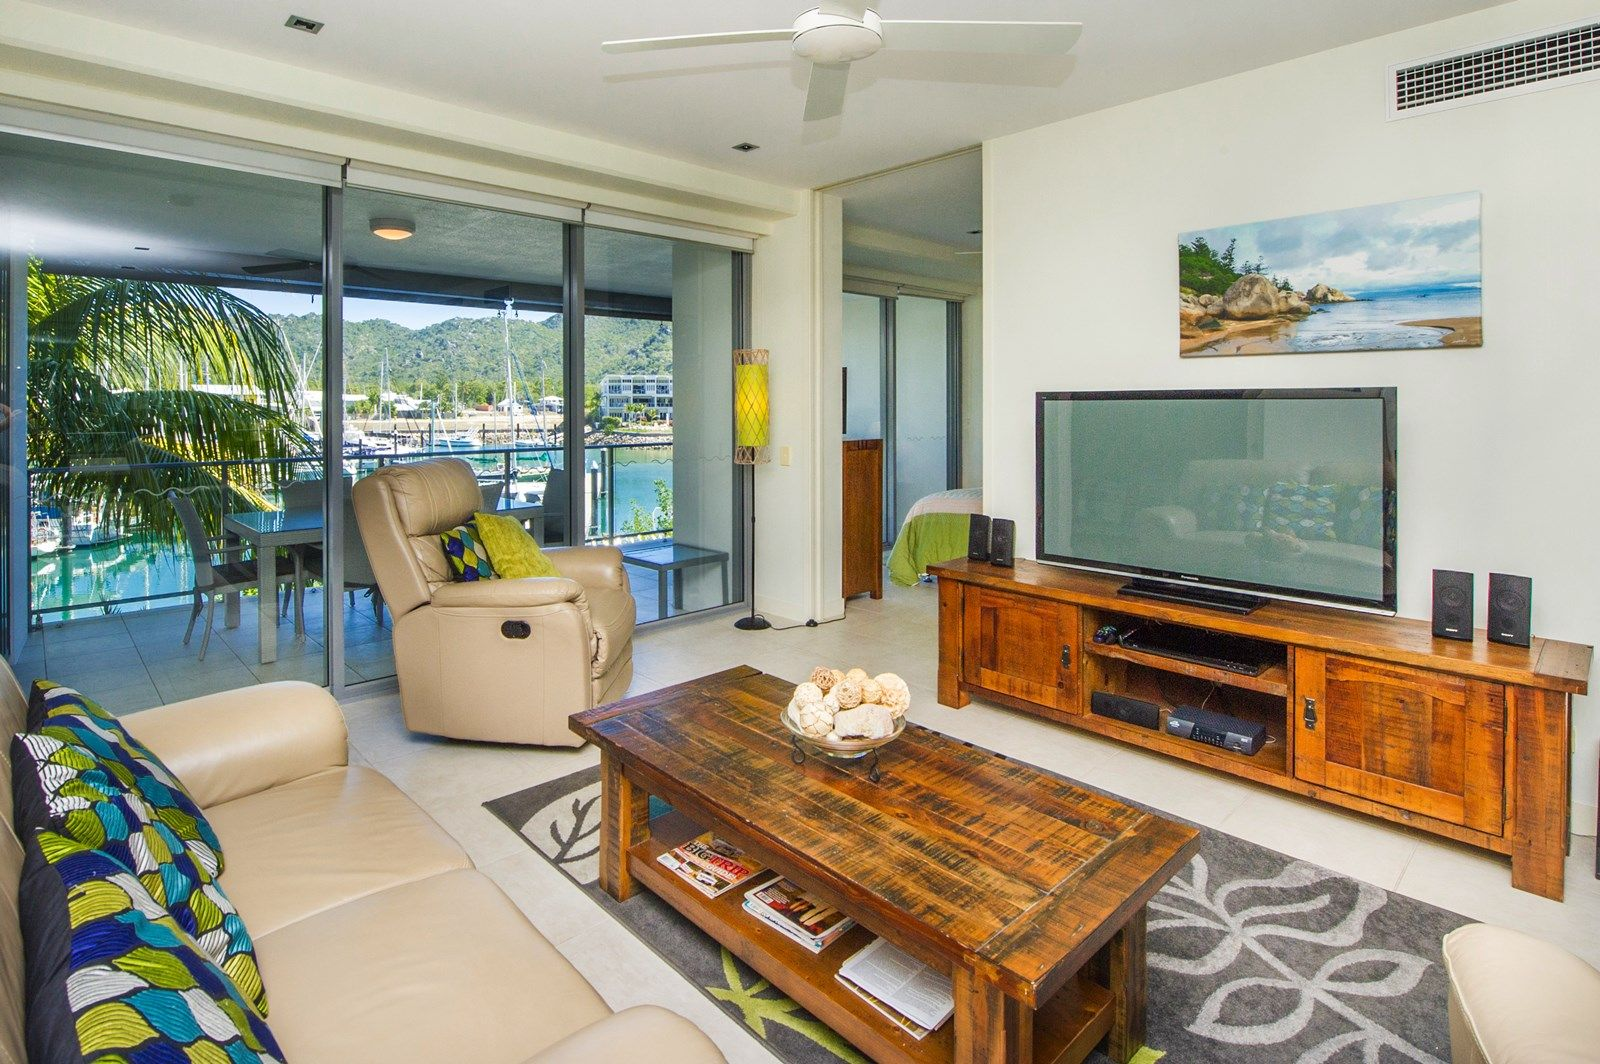 1023/123 Sooning, Nelly Bay QLD 4819, Image 2